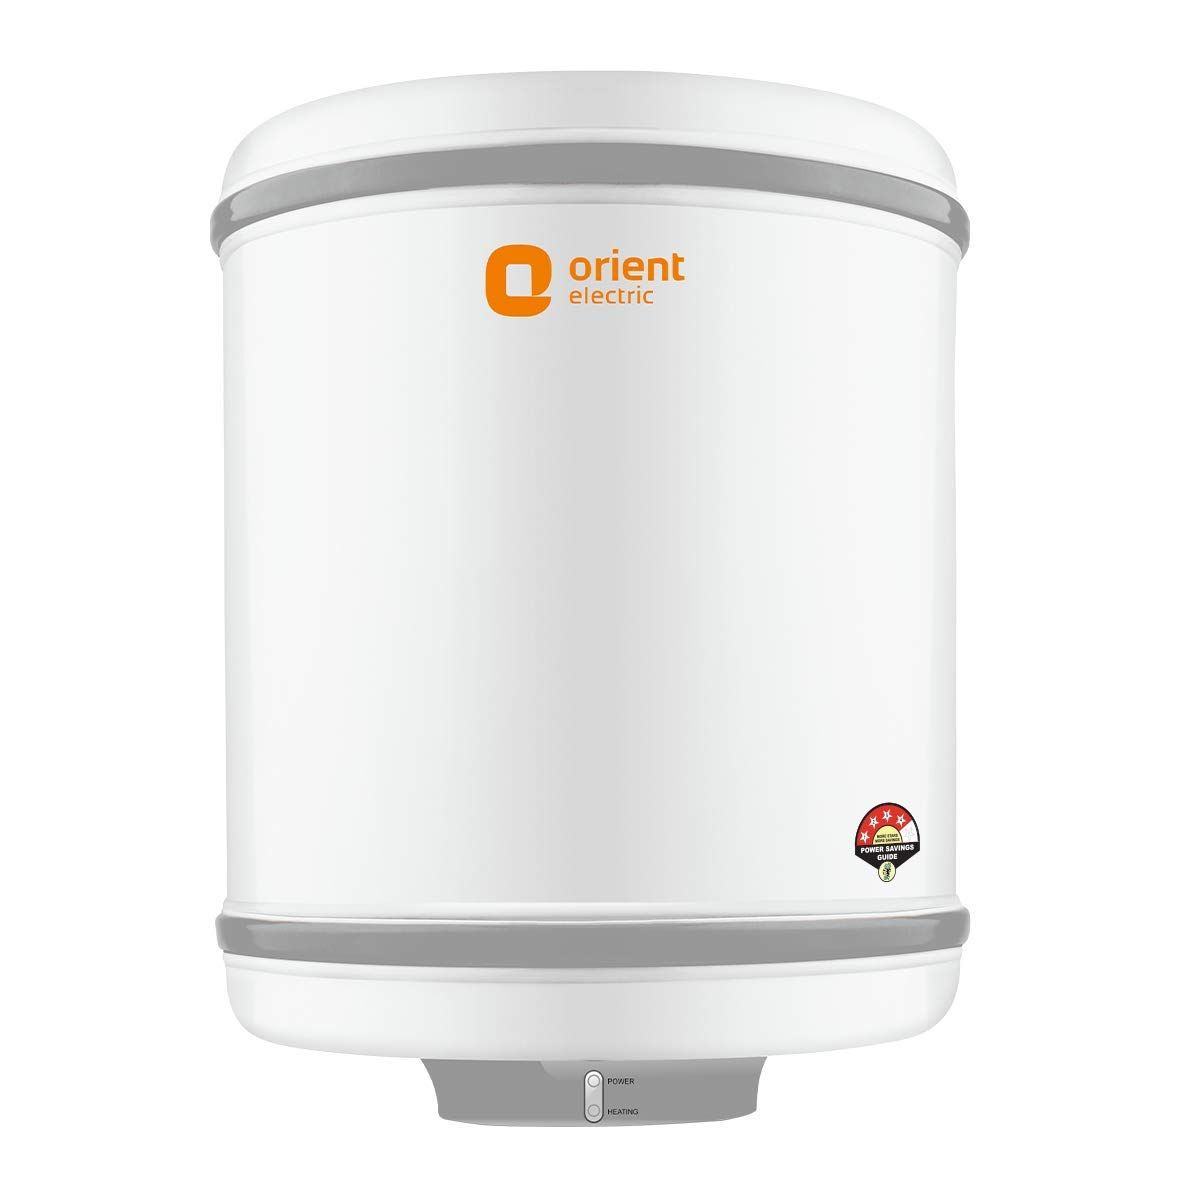 orient electric 10L geyser